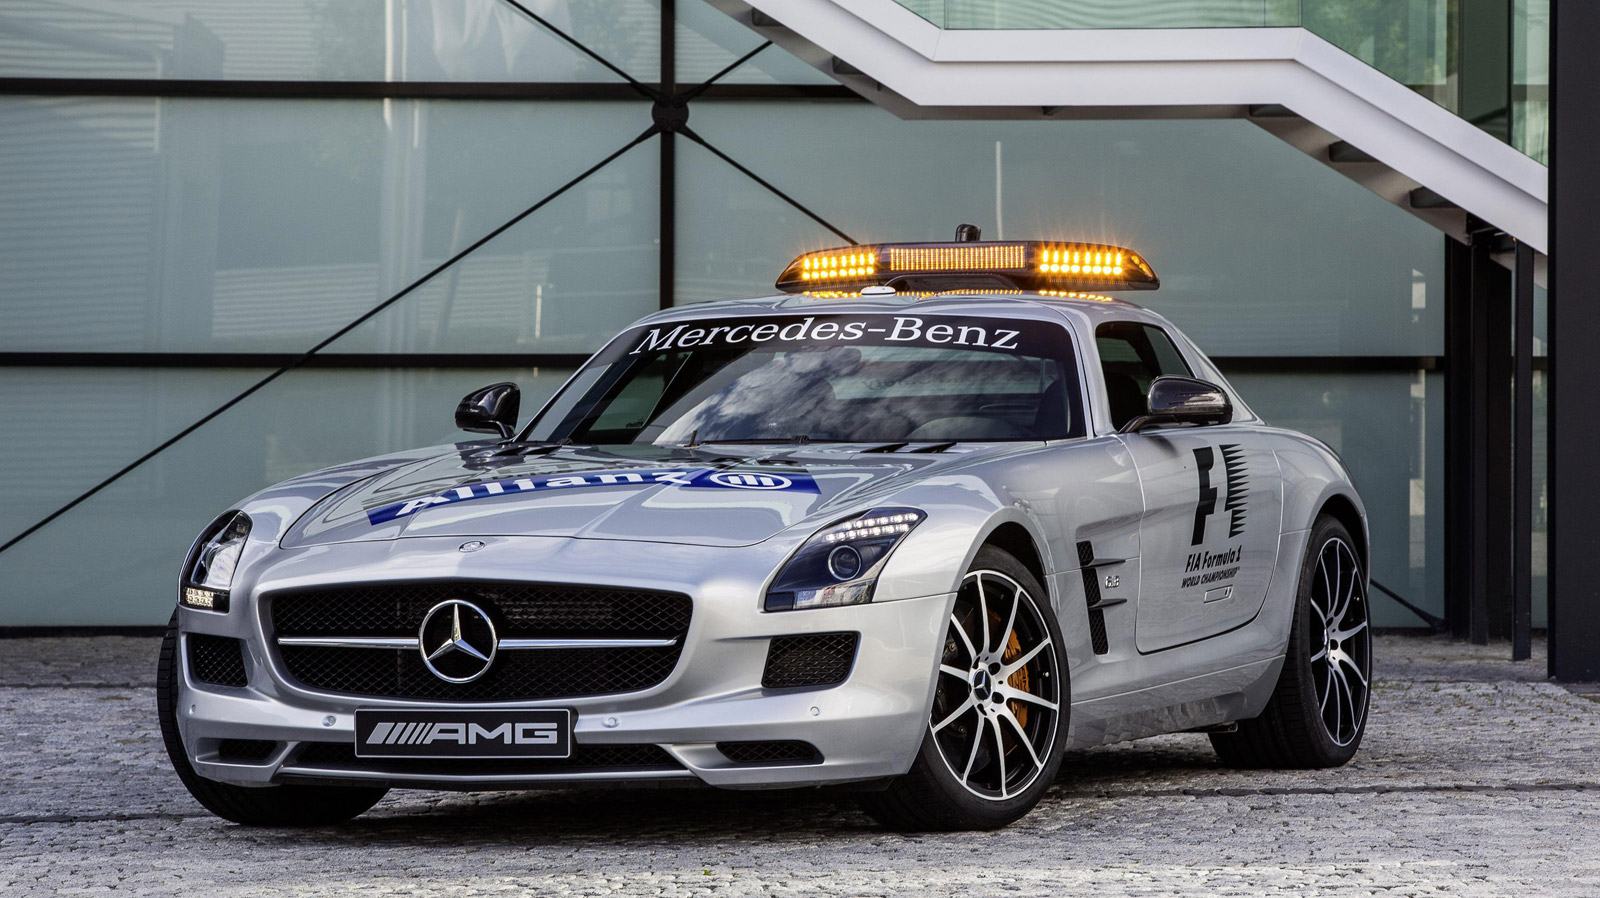 F1 Safety Car Gets Upgraded To Mercedes Benz Sls Amg Gt